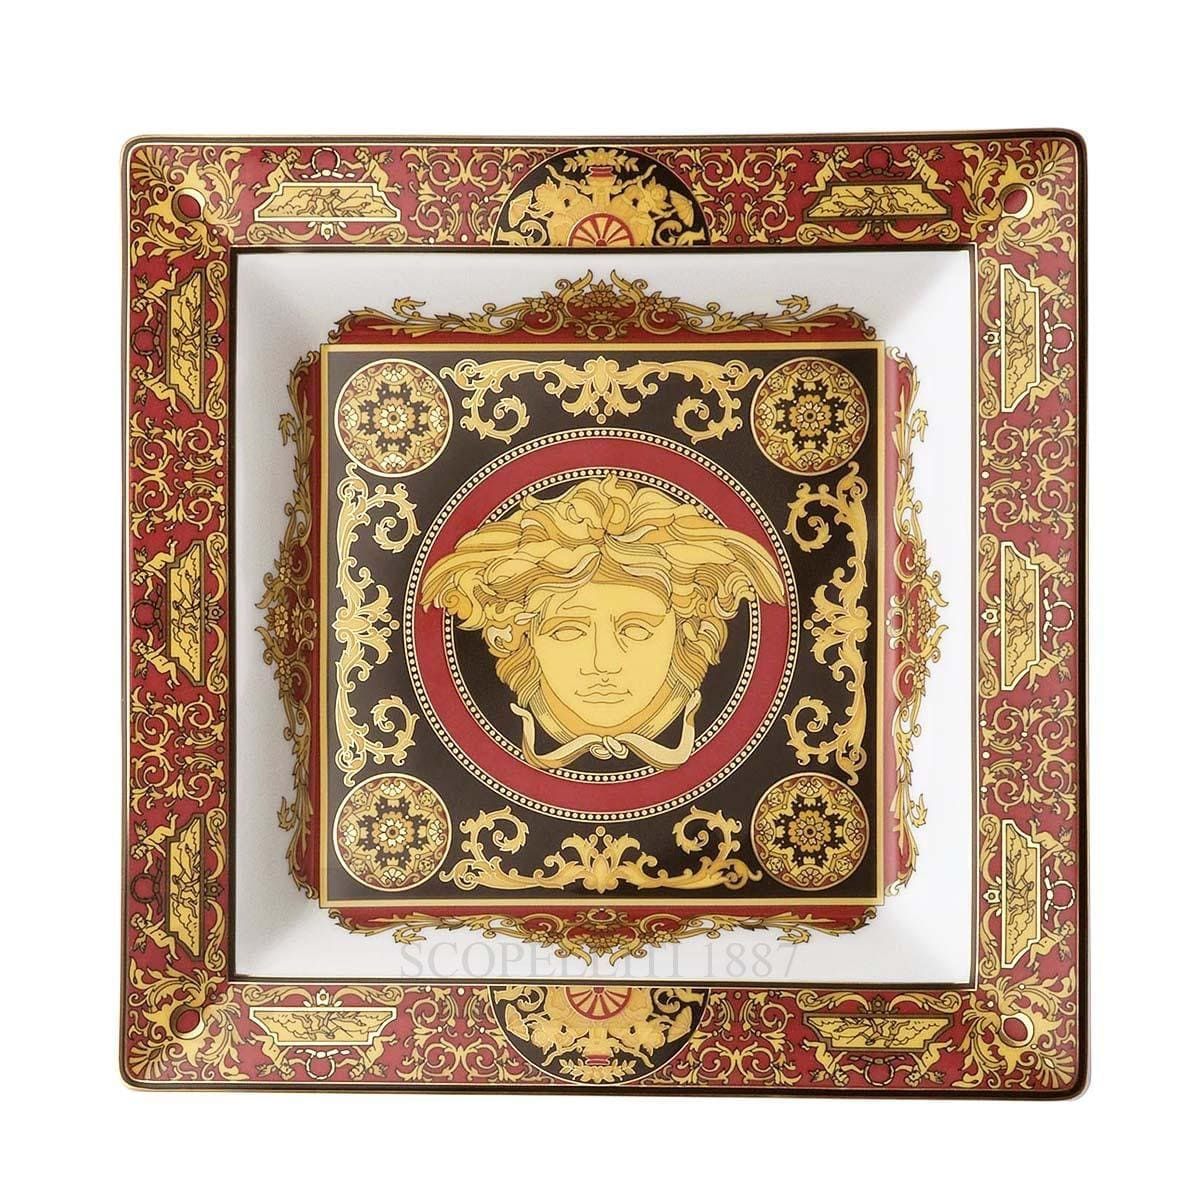 versace medusa square dish italian design red golden large